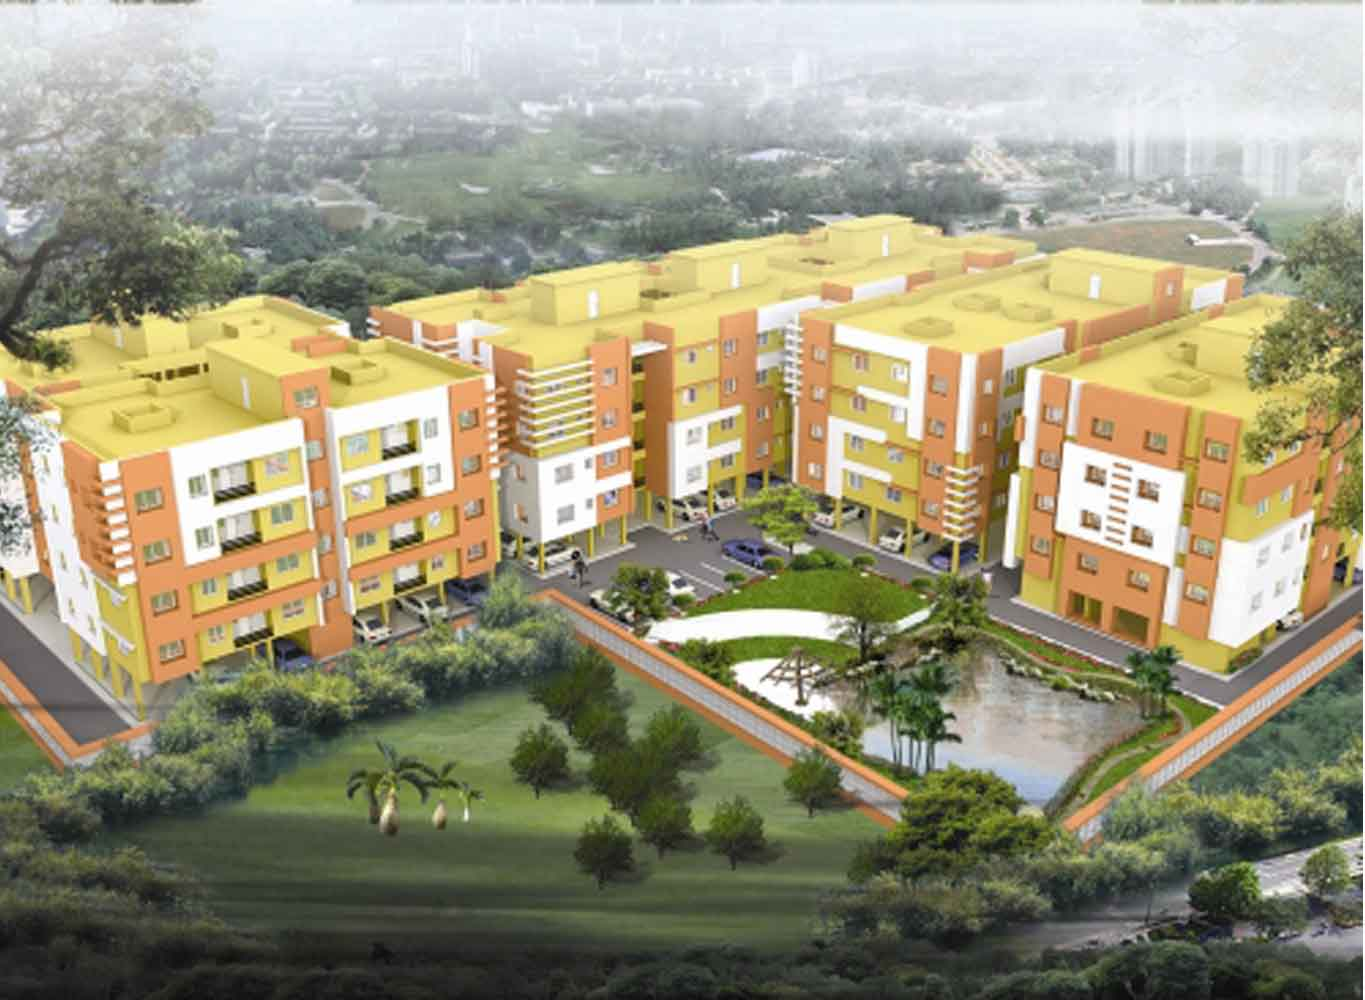 Eden Tolly Lakeside - Flats in Kolkata